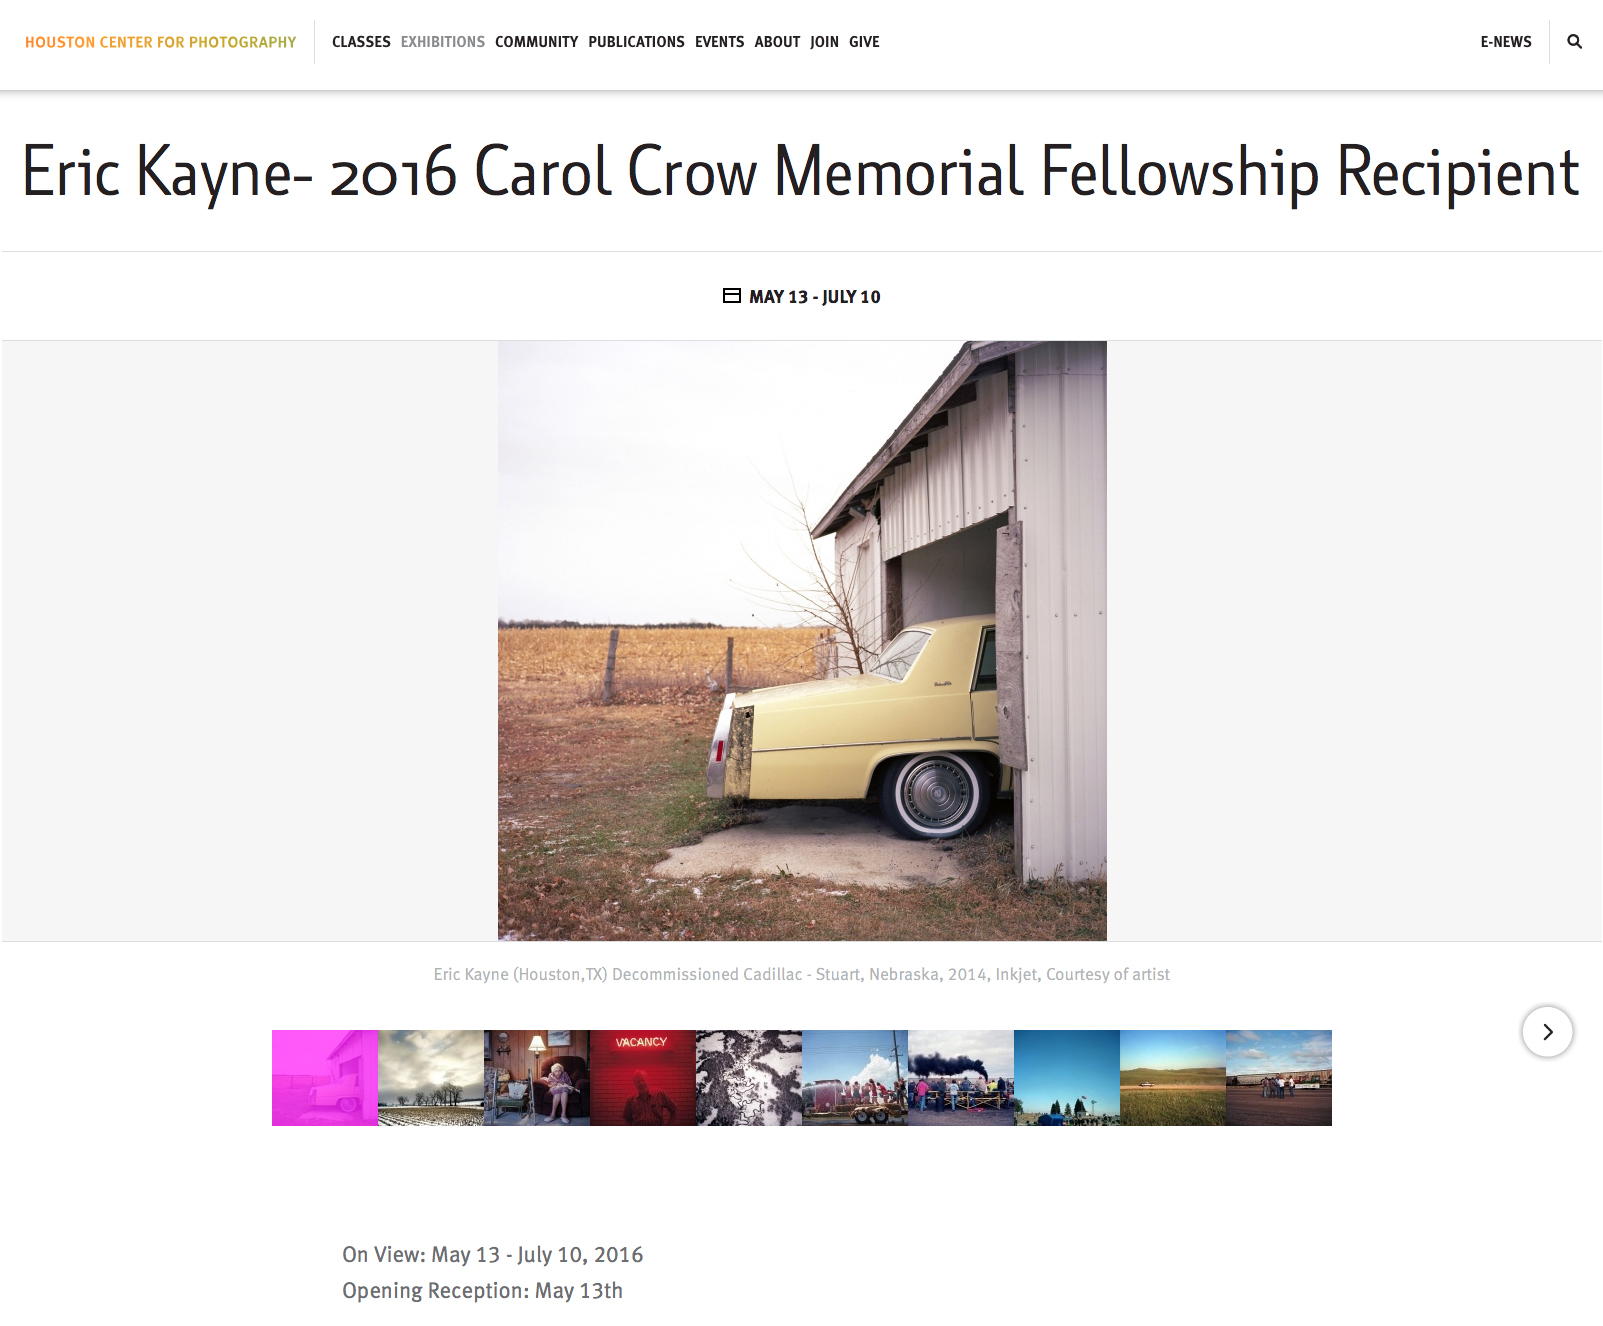 Screenshot from Houston Center for Photography website announcing fellowship and exhibition details